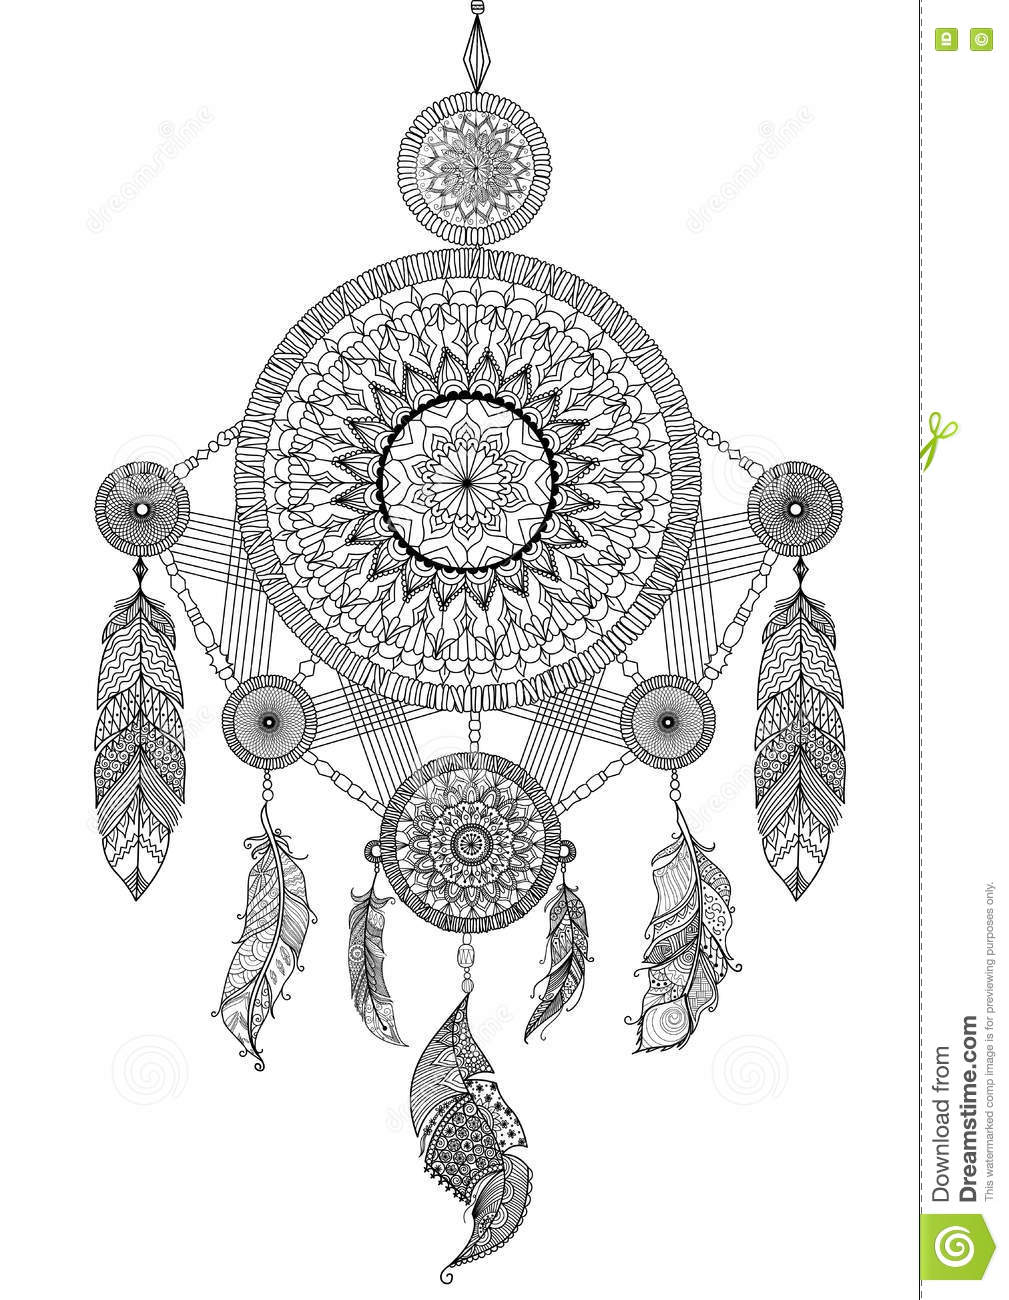 Coloring pages dream catchers - Lineart Design Of Beautiful Unique Dream Catcher For Illustration And Adult Coloring Book Pages Stock